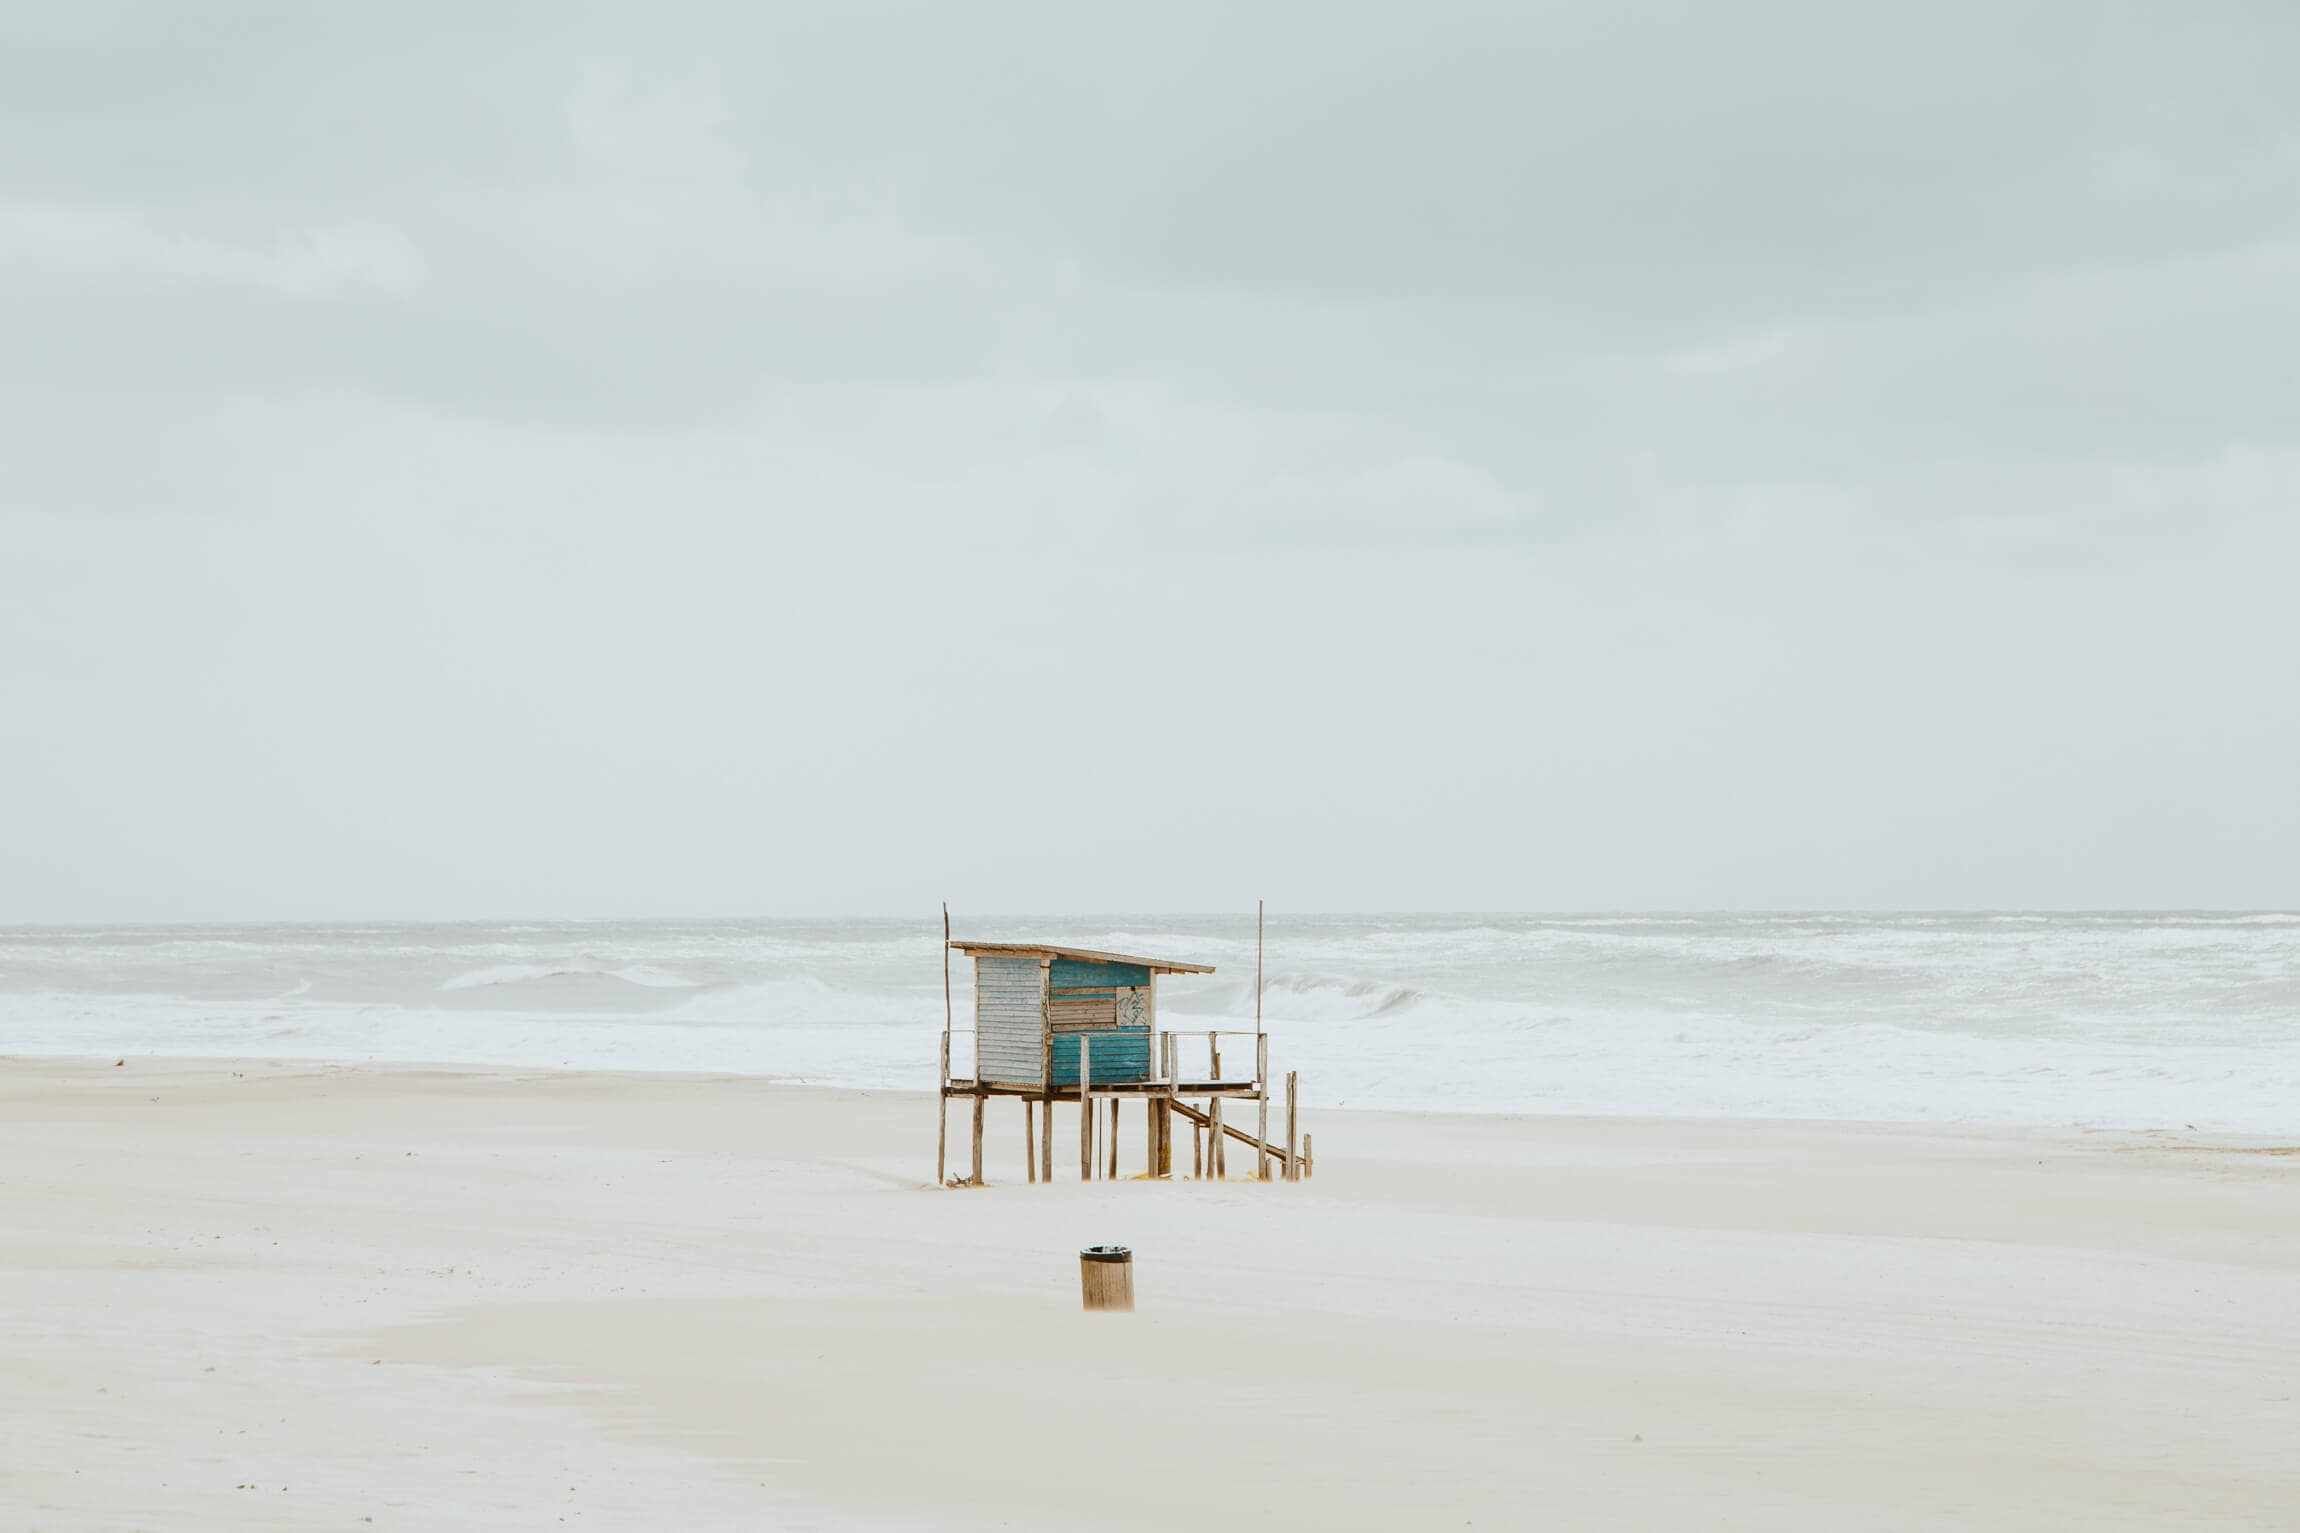 A blue lifeguard stand on the beach